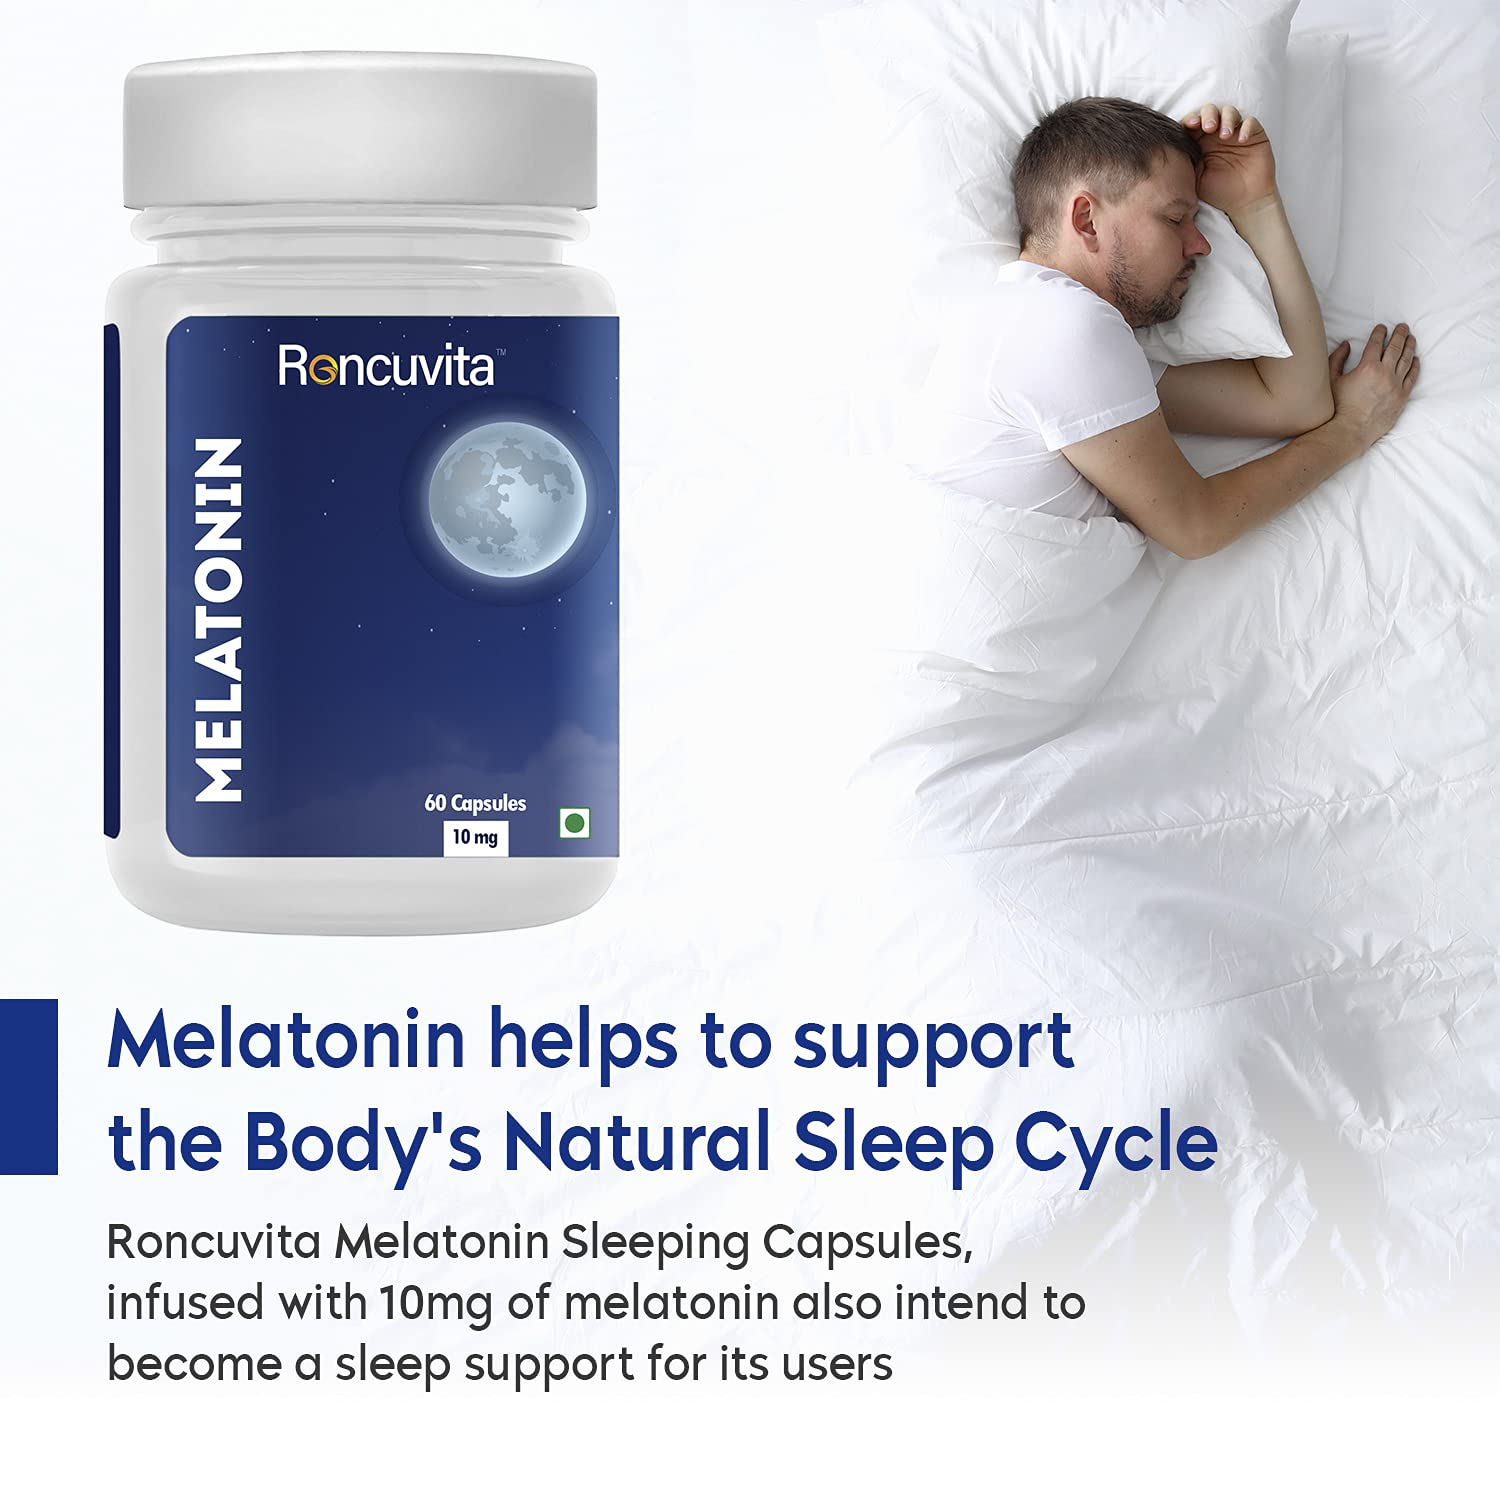 It can become an indicator of a lot of issues if you do not have adequate sleep and are having sleep